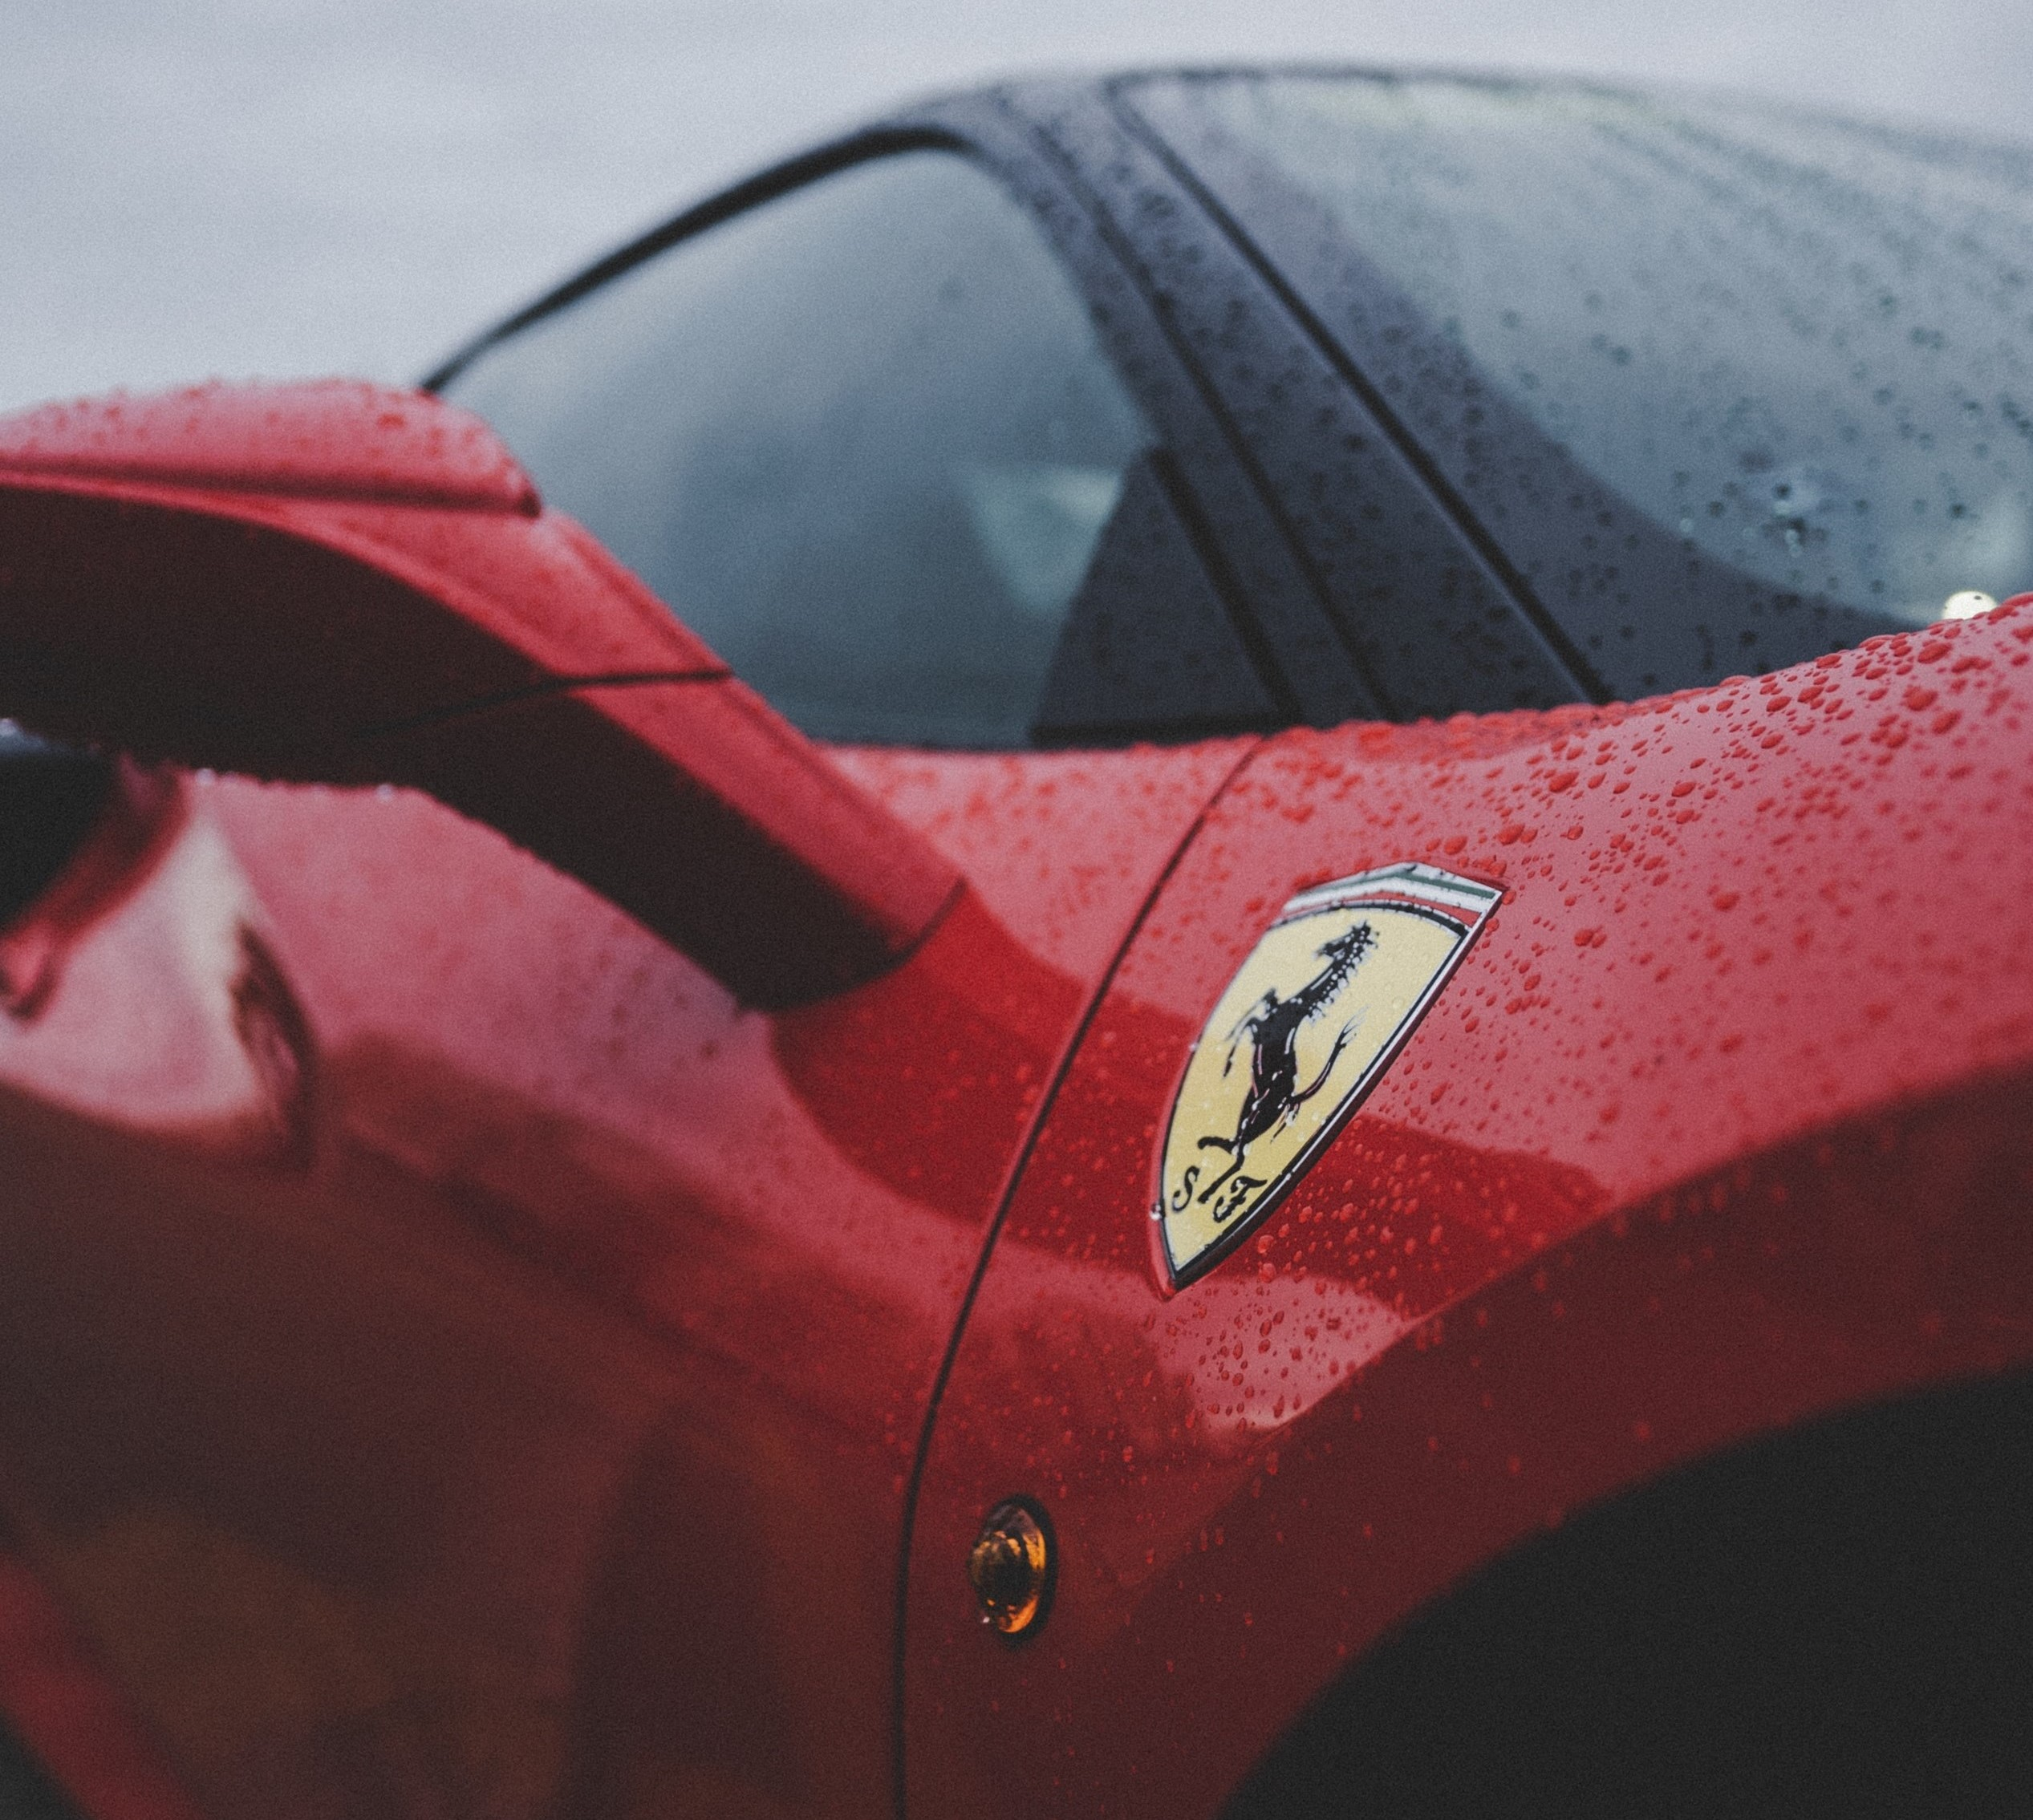 Who Owns Ferrari Now Current Owner And Its Ownership History